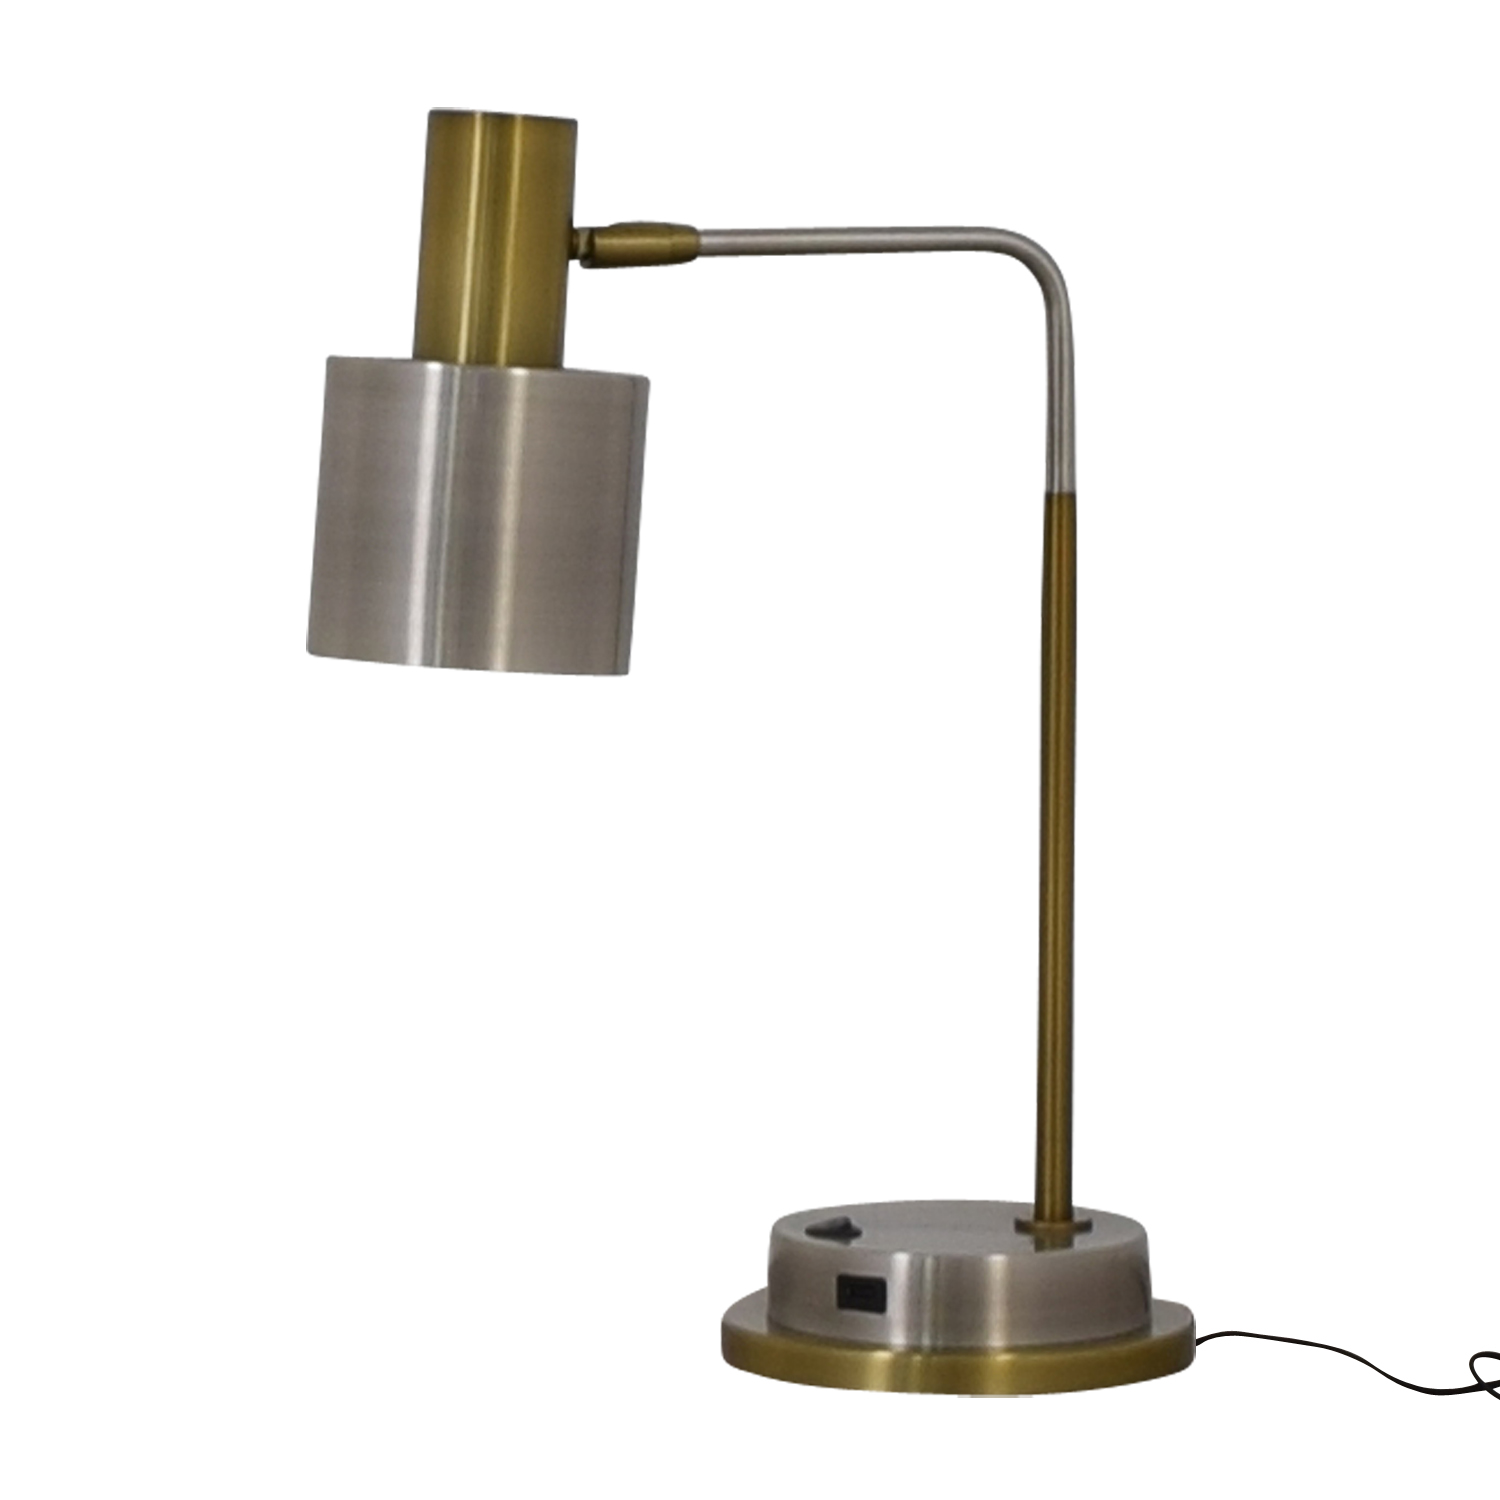 West Elm West Elm Metal Task Table Lamp with USB Port